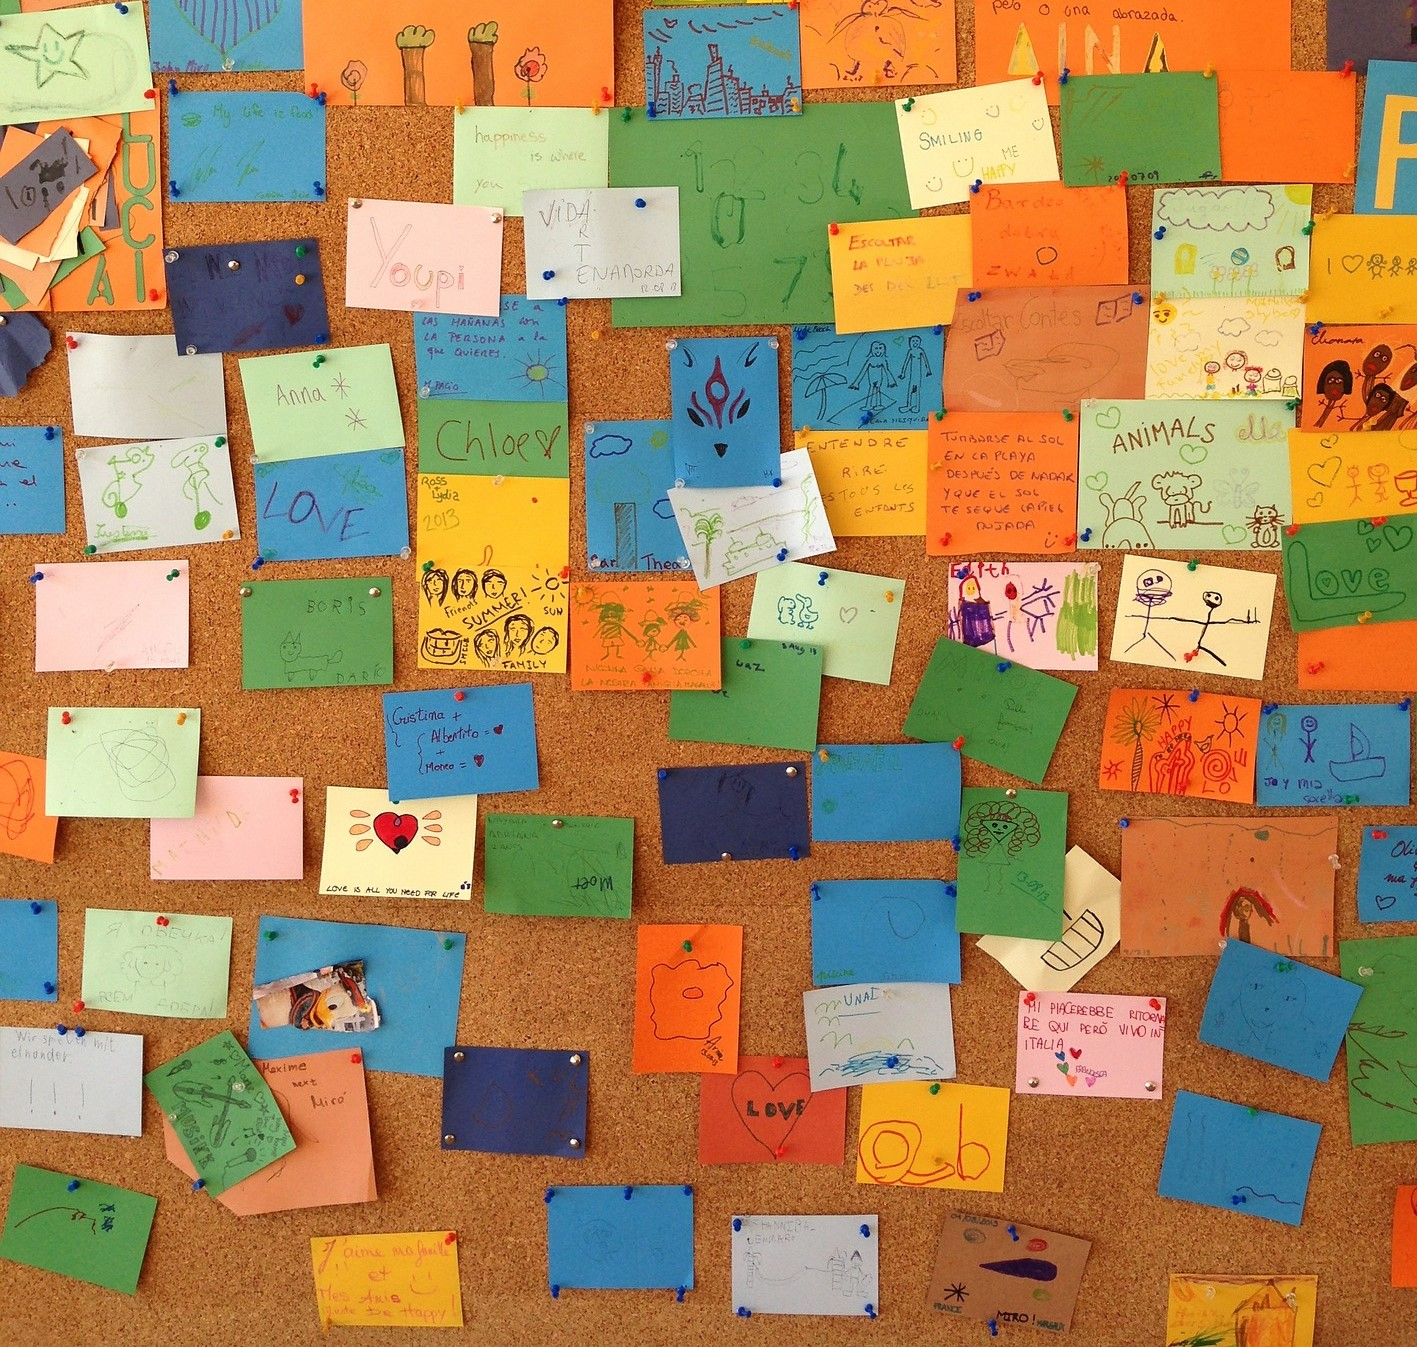 Pinboard with lots of coloured post-it notes attached